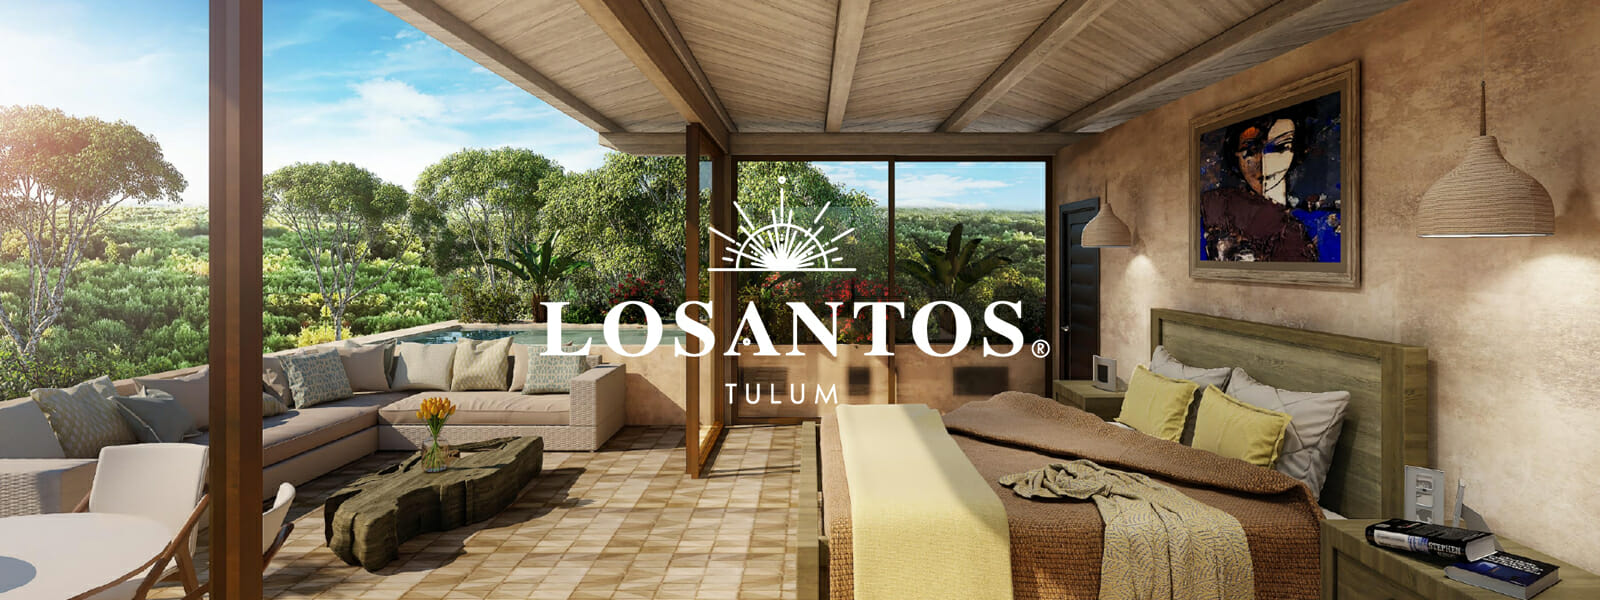 Losantos Gated Community | 55+ Community Top Mexico Real Estate